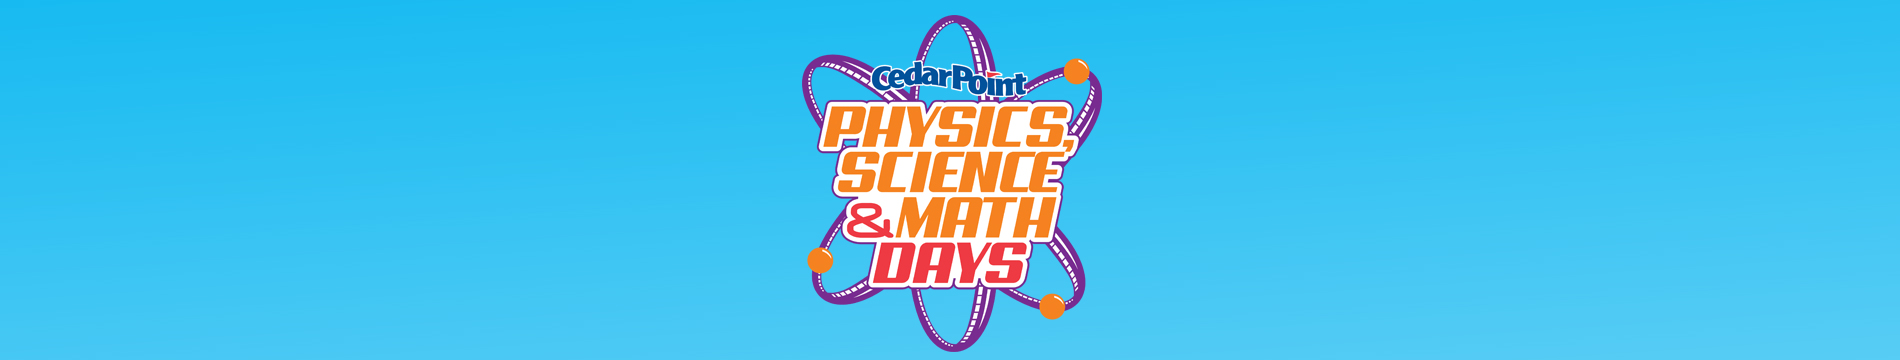 Physics, Science & Math Week